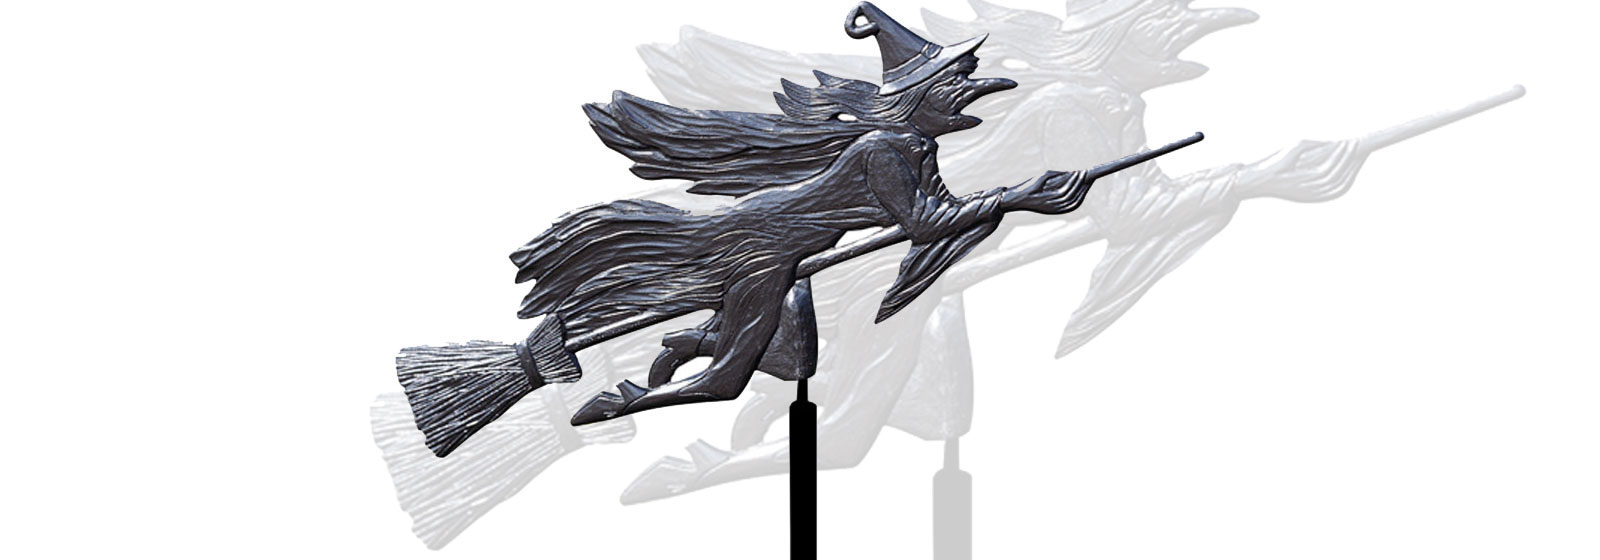 Builders Series Weathervanes